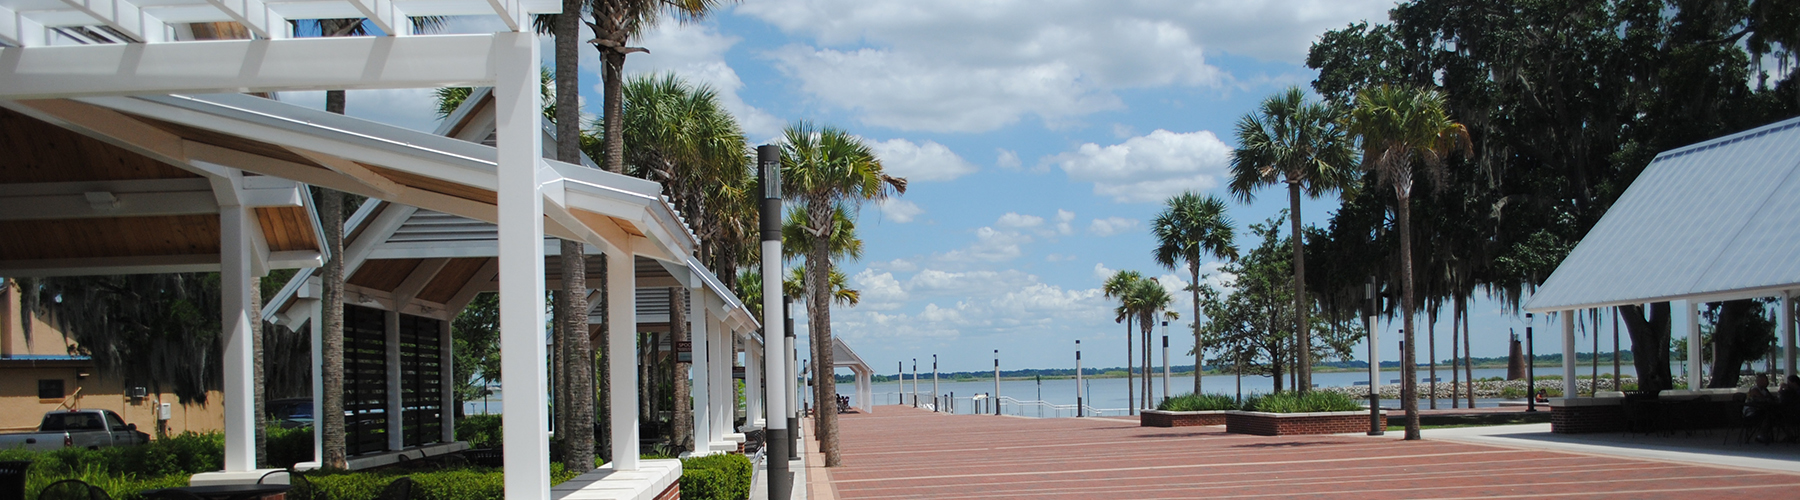 kissimmee-lakefront